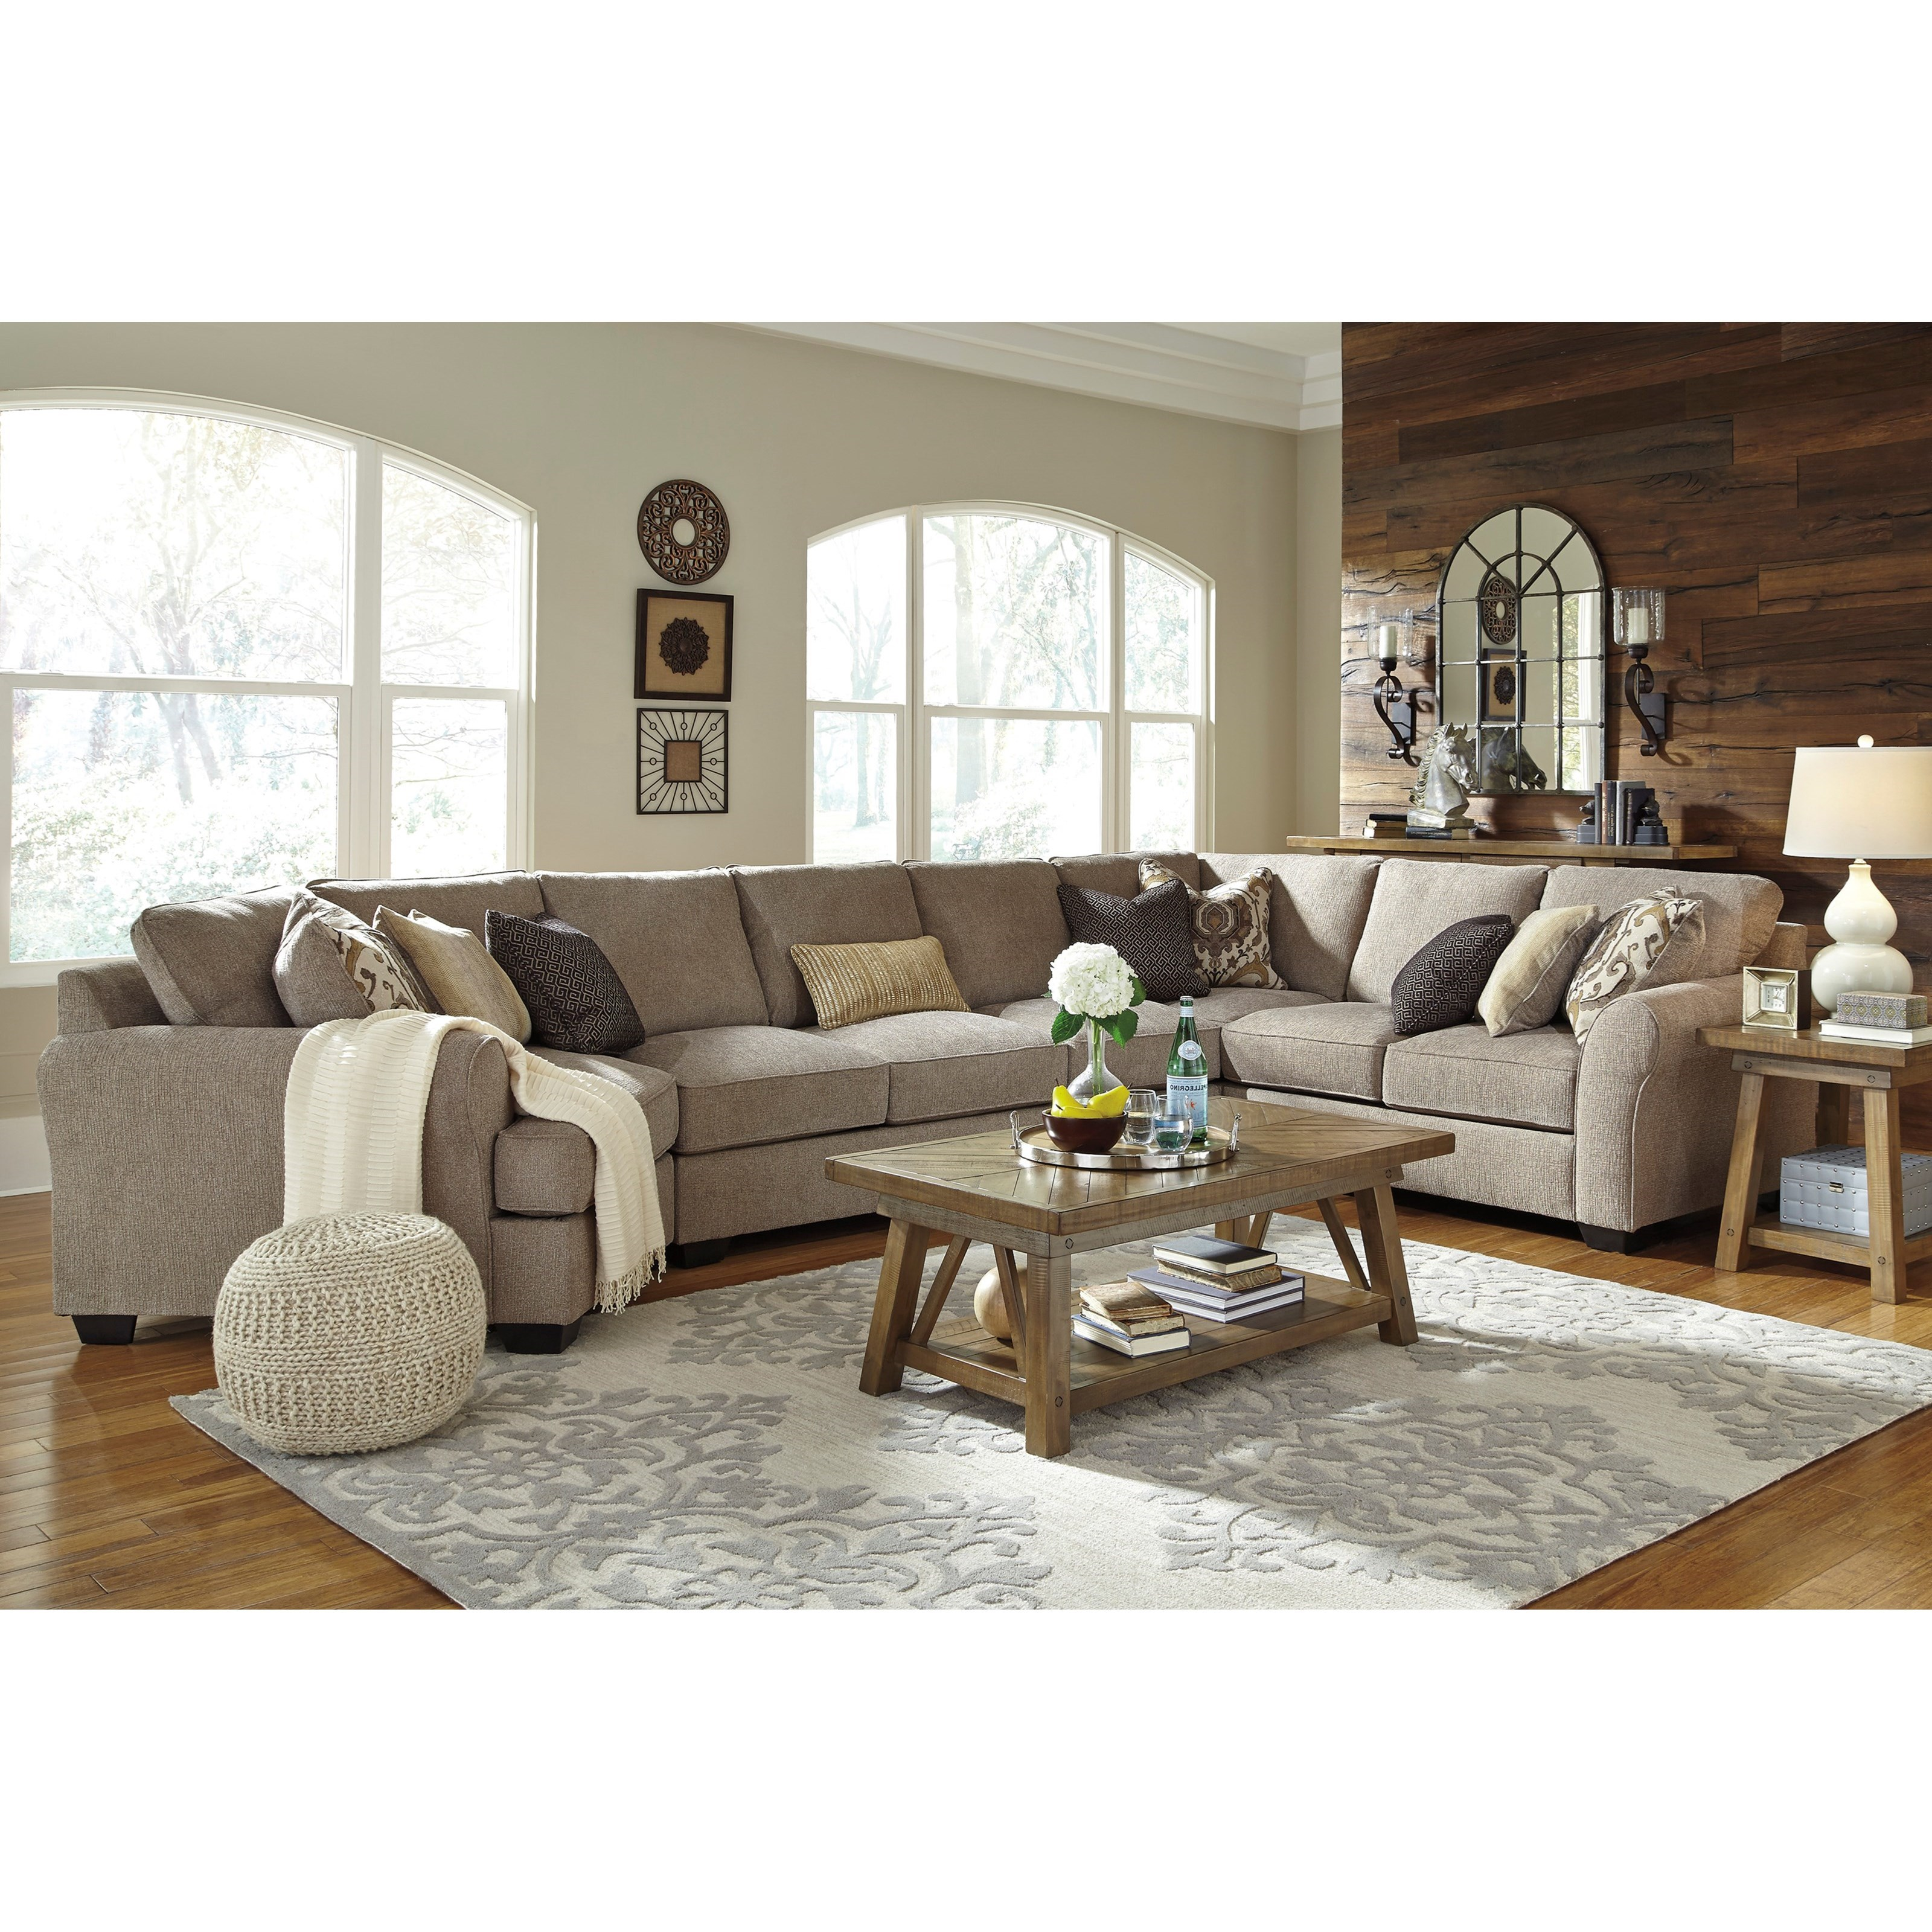 4 Piece Sectional with Left Cuddler & Armless Sofa by Benchcraft